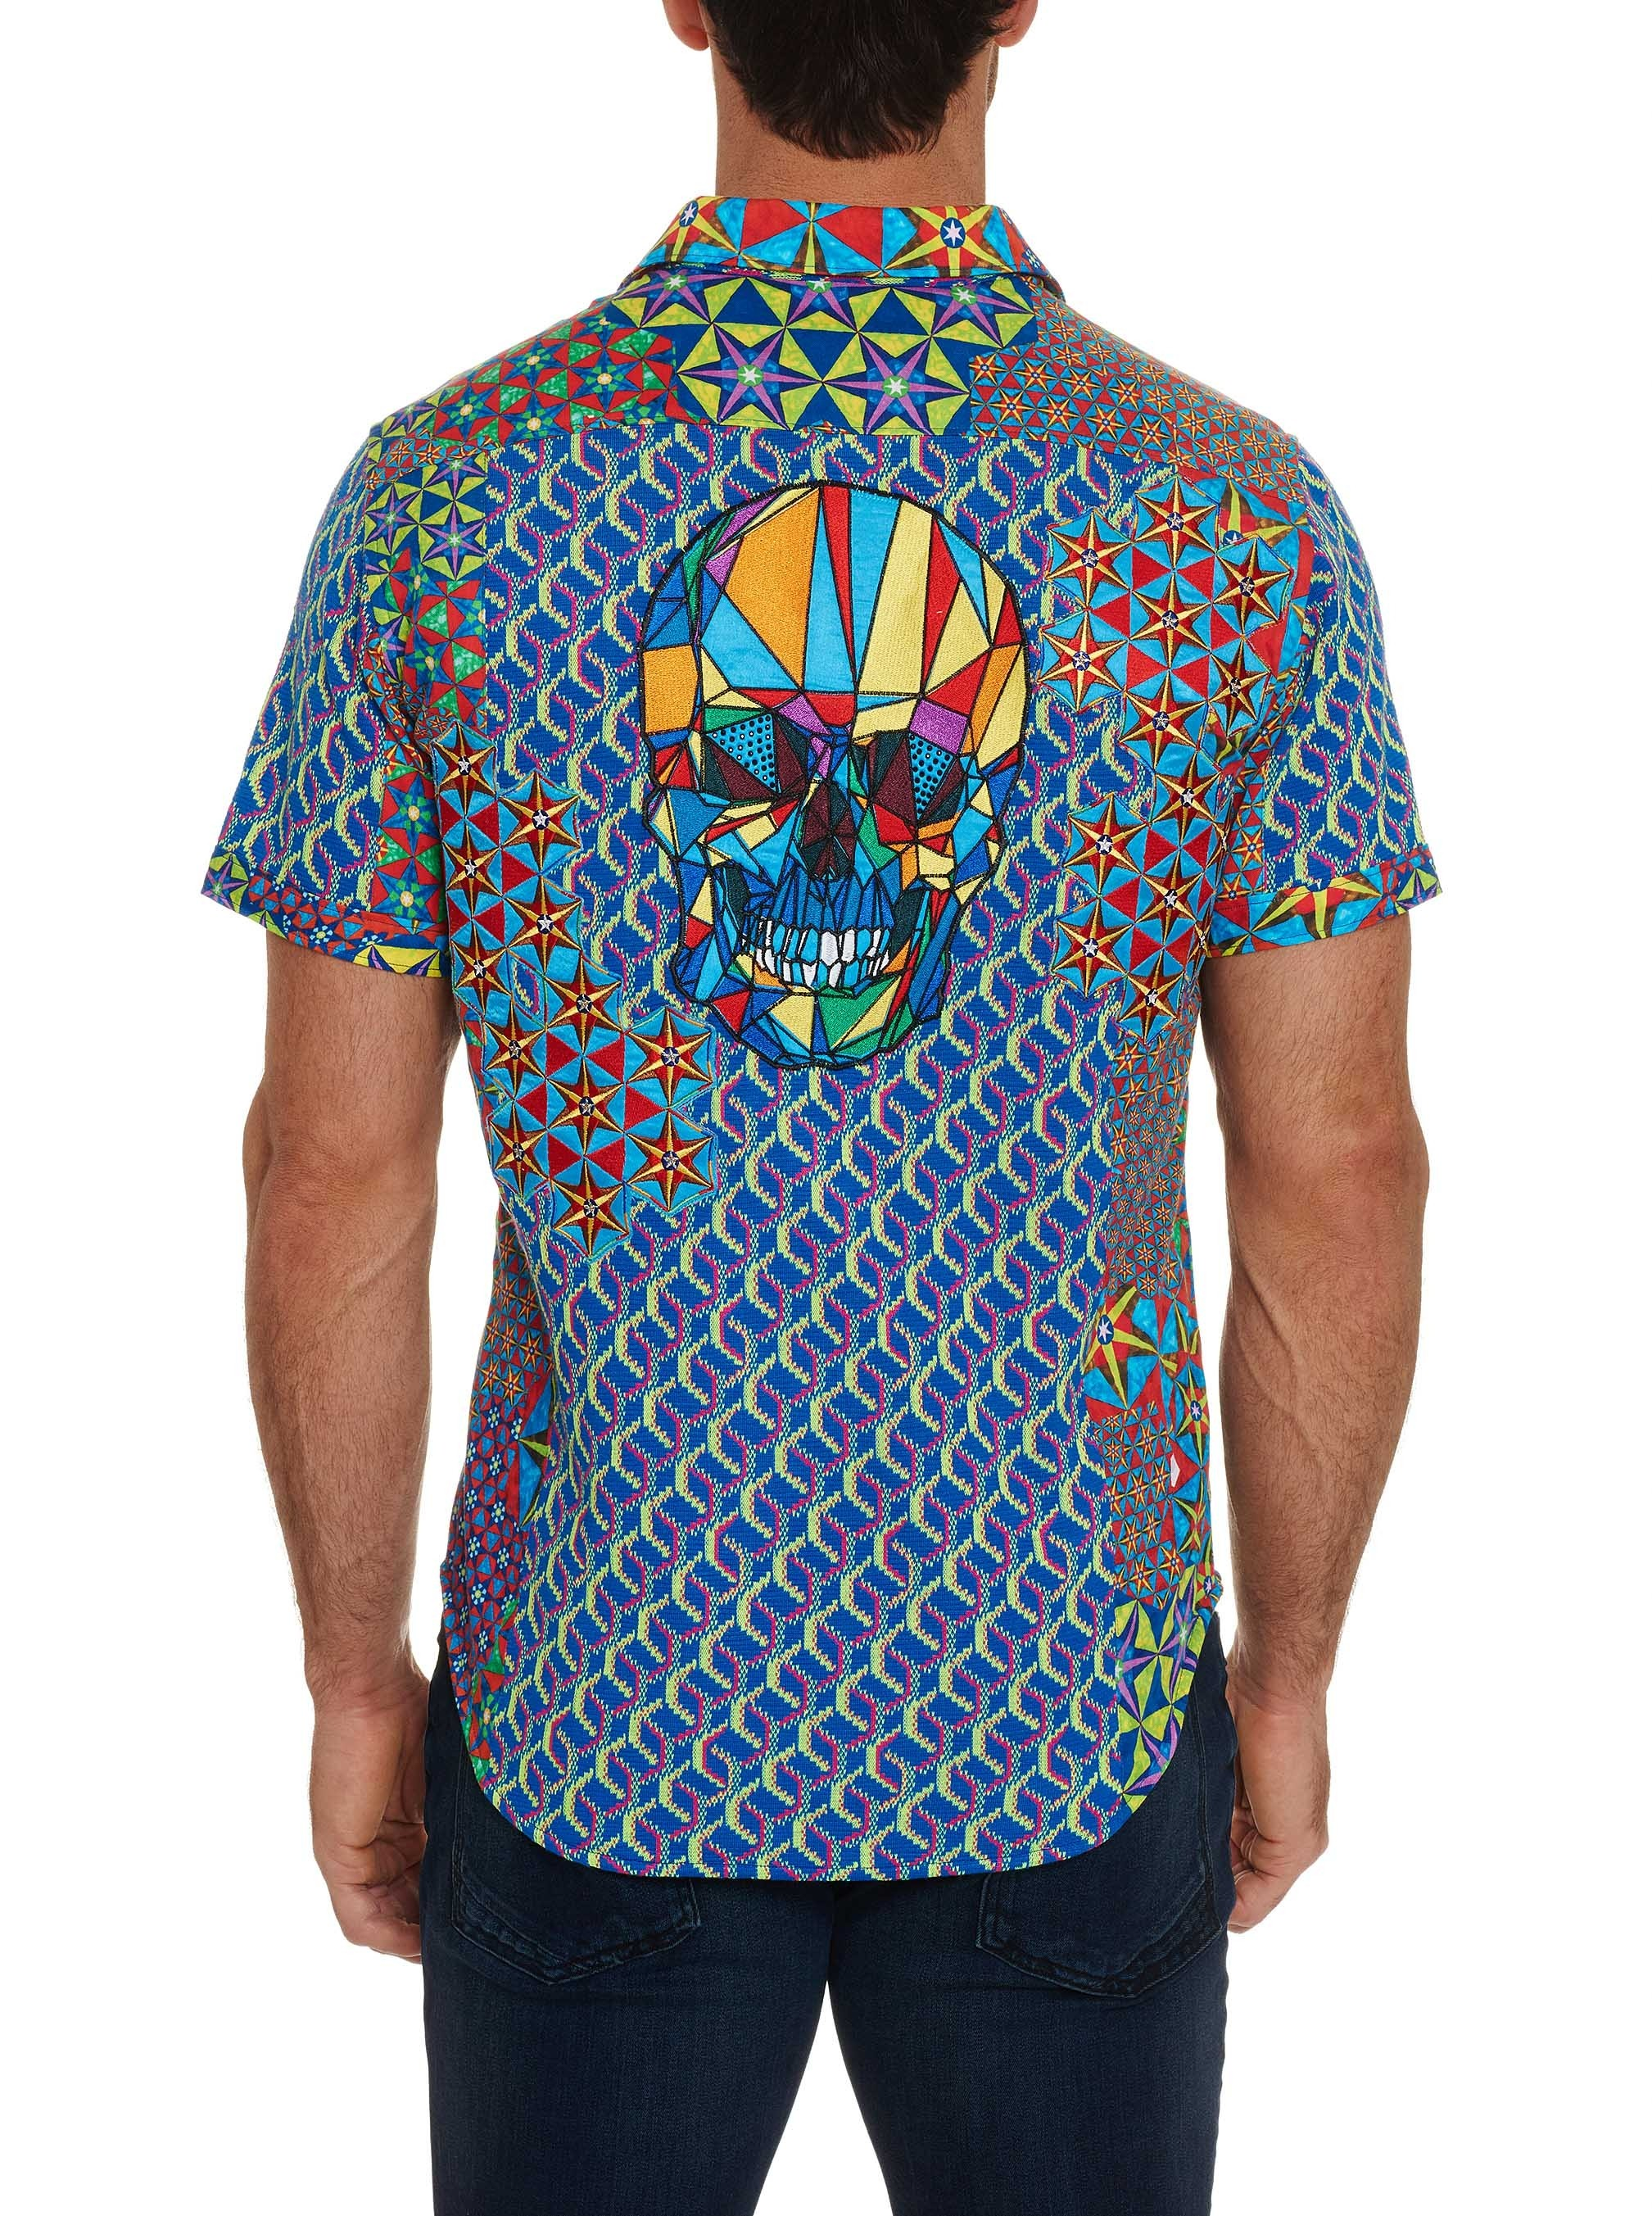 Robert Graham Limited Edition The Prism Short Sleeve Shirt Multi